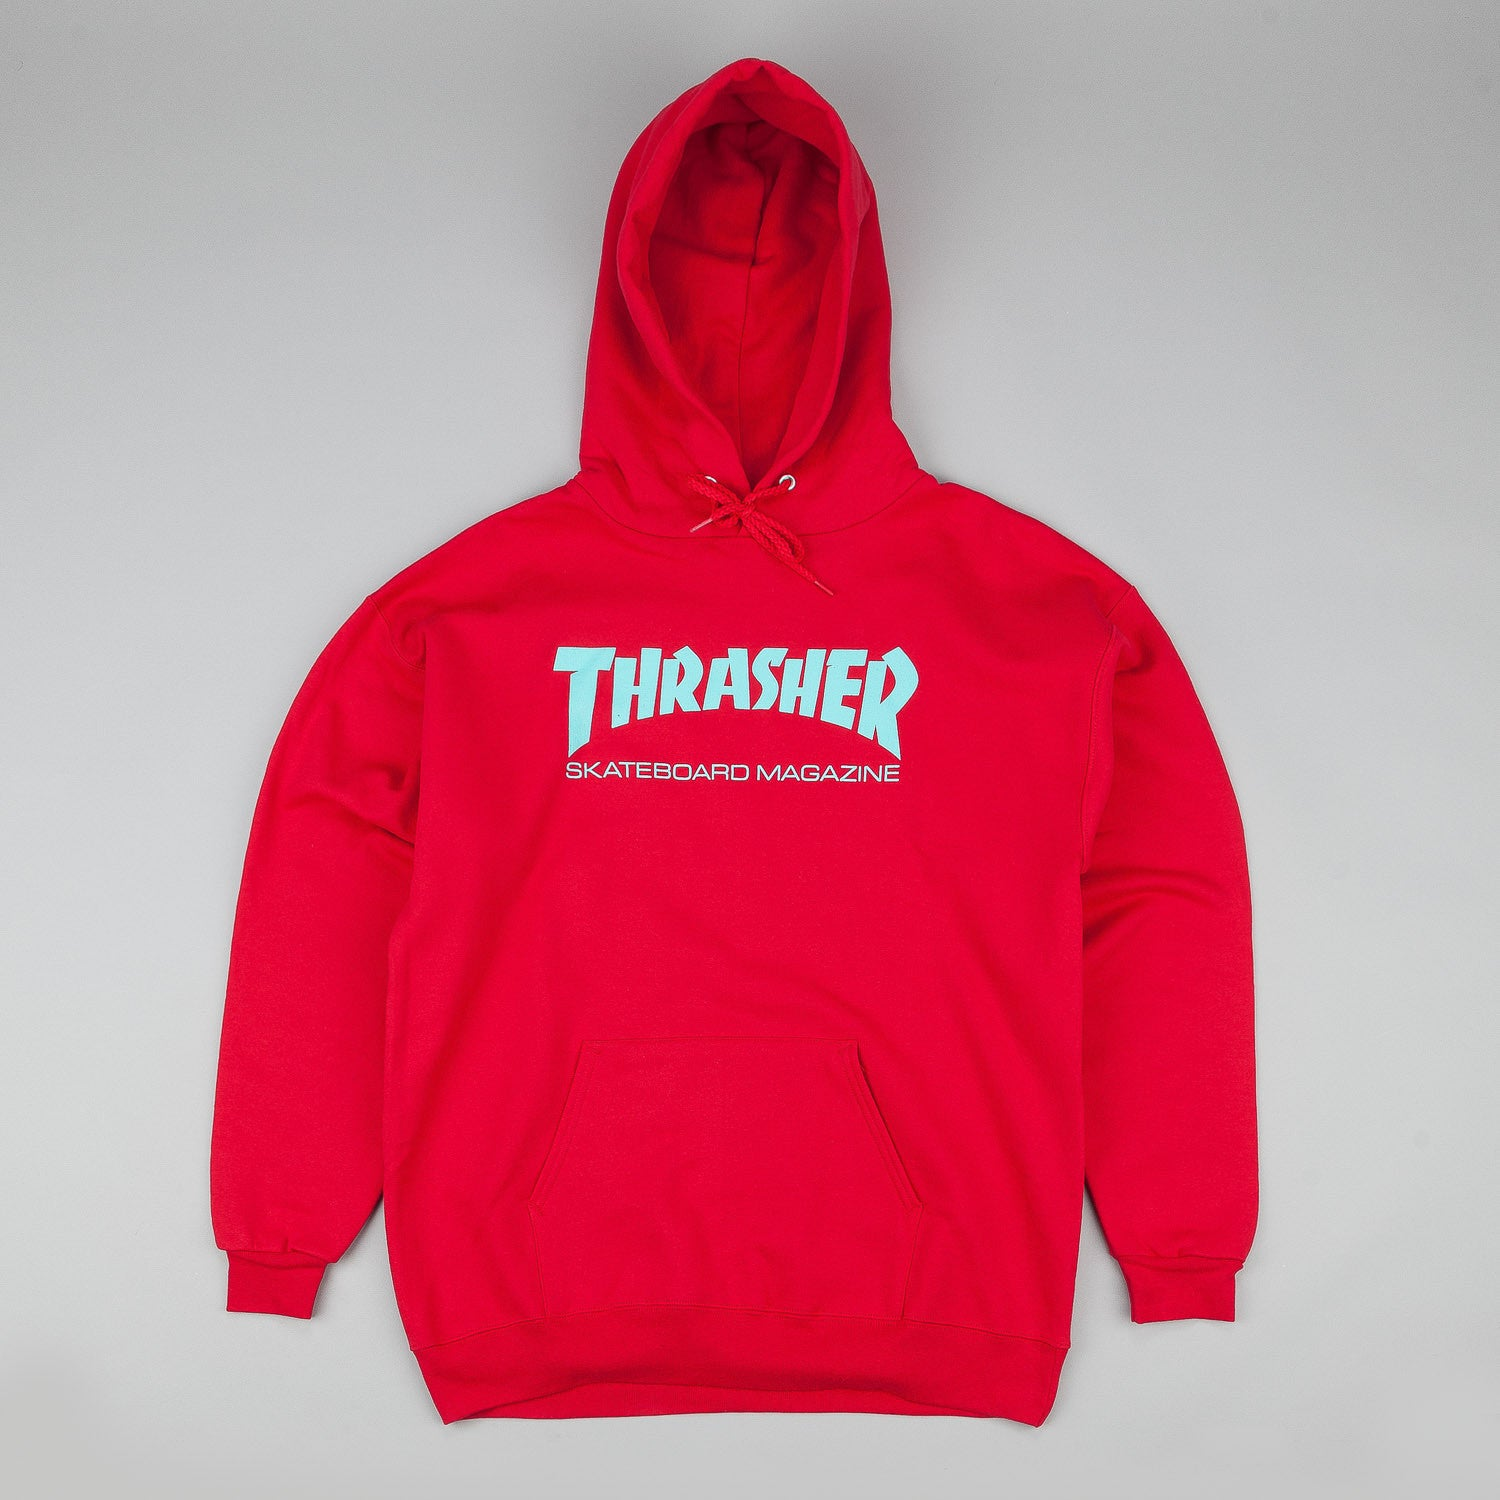 Thrasher Skate Mag Logo Hooded Sweatshirt